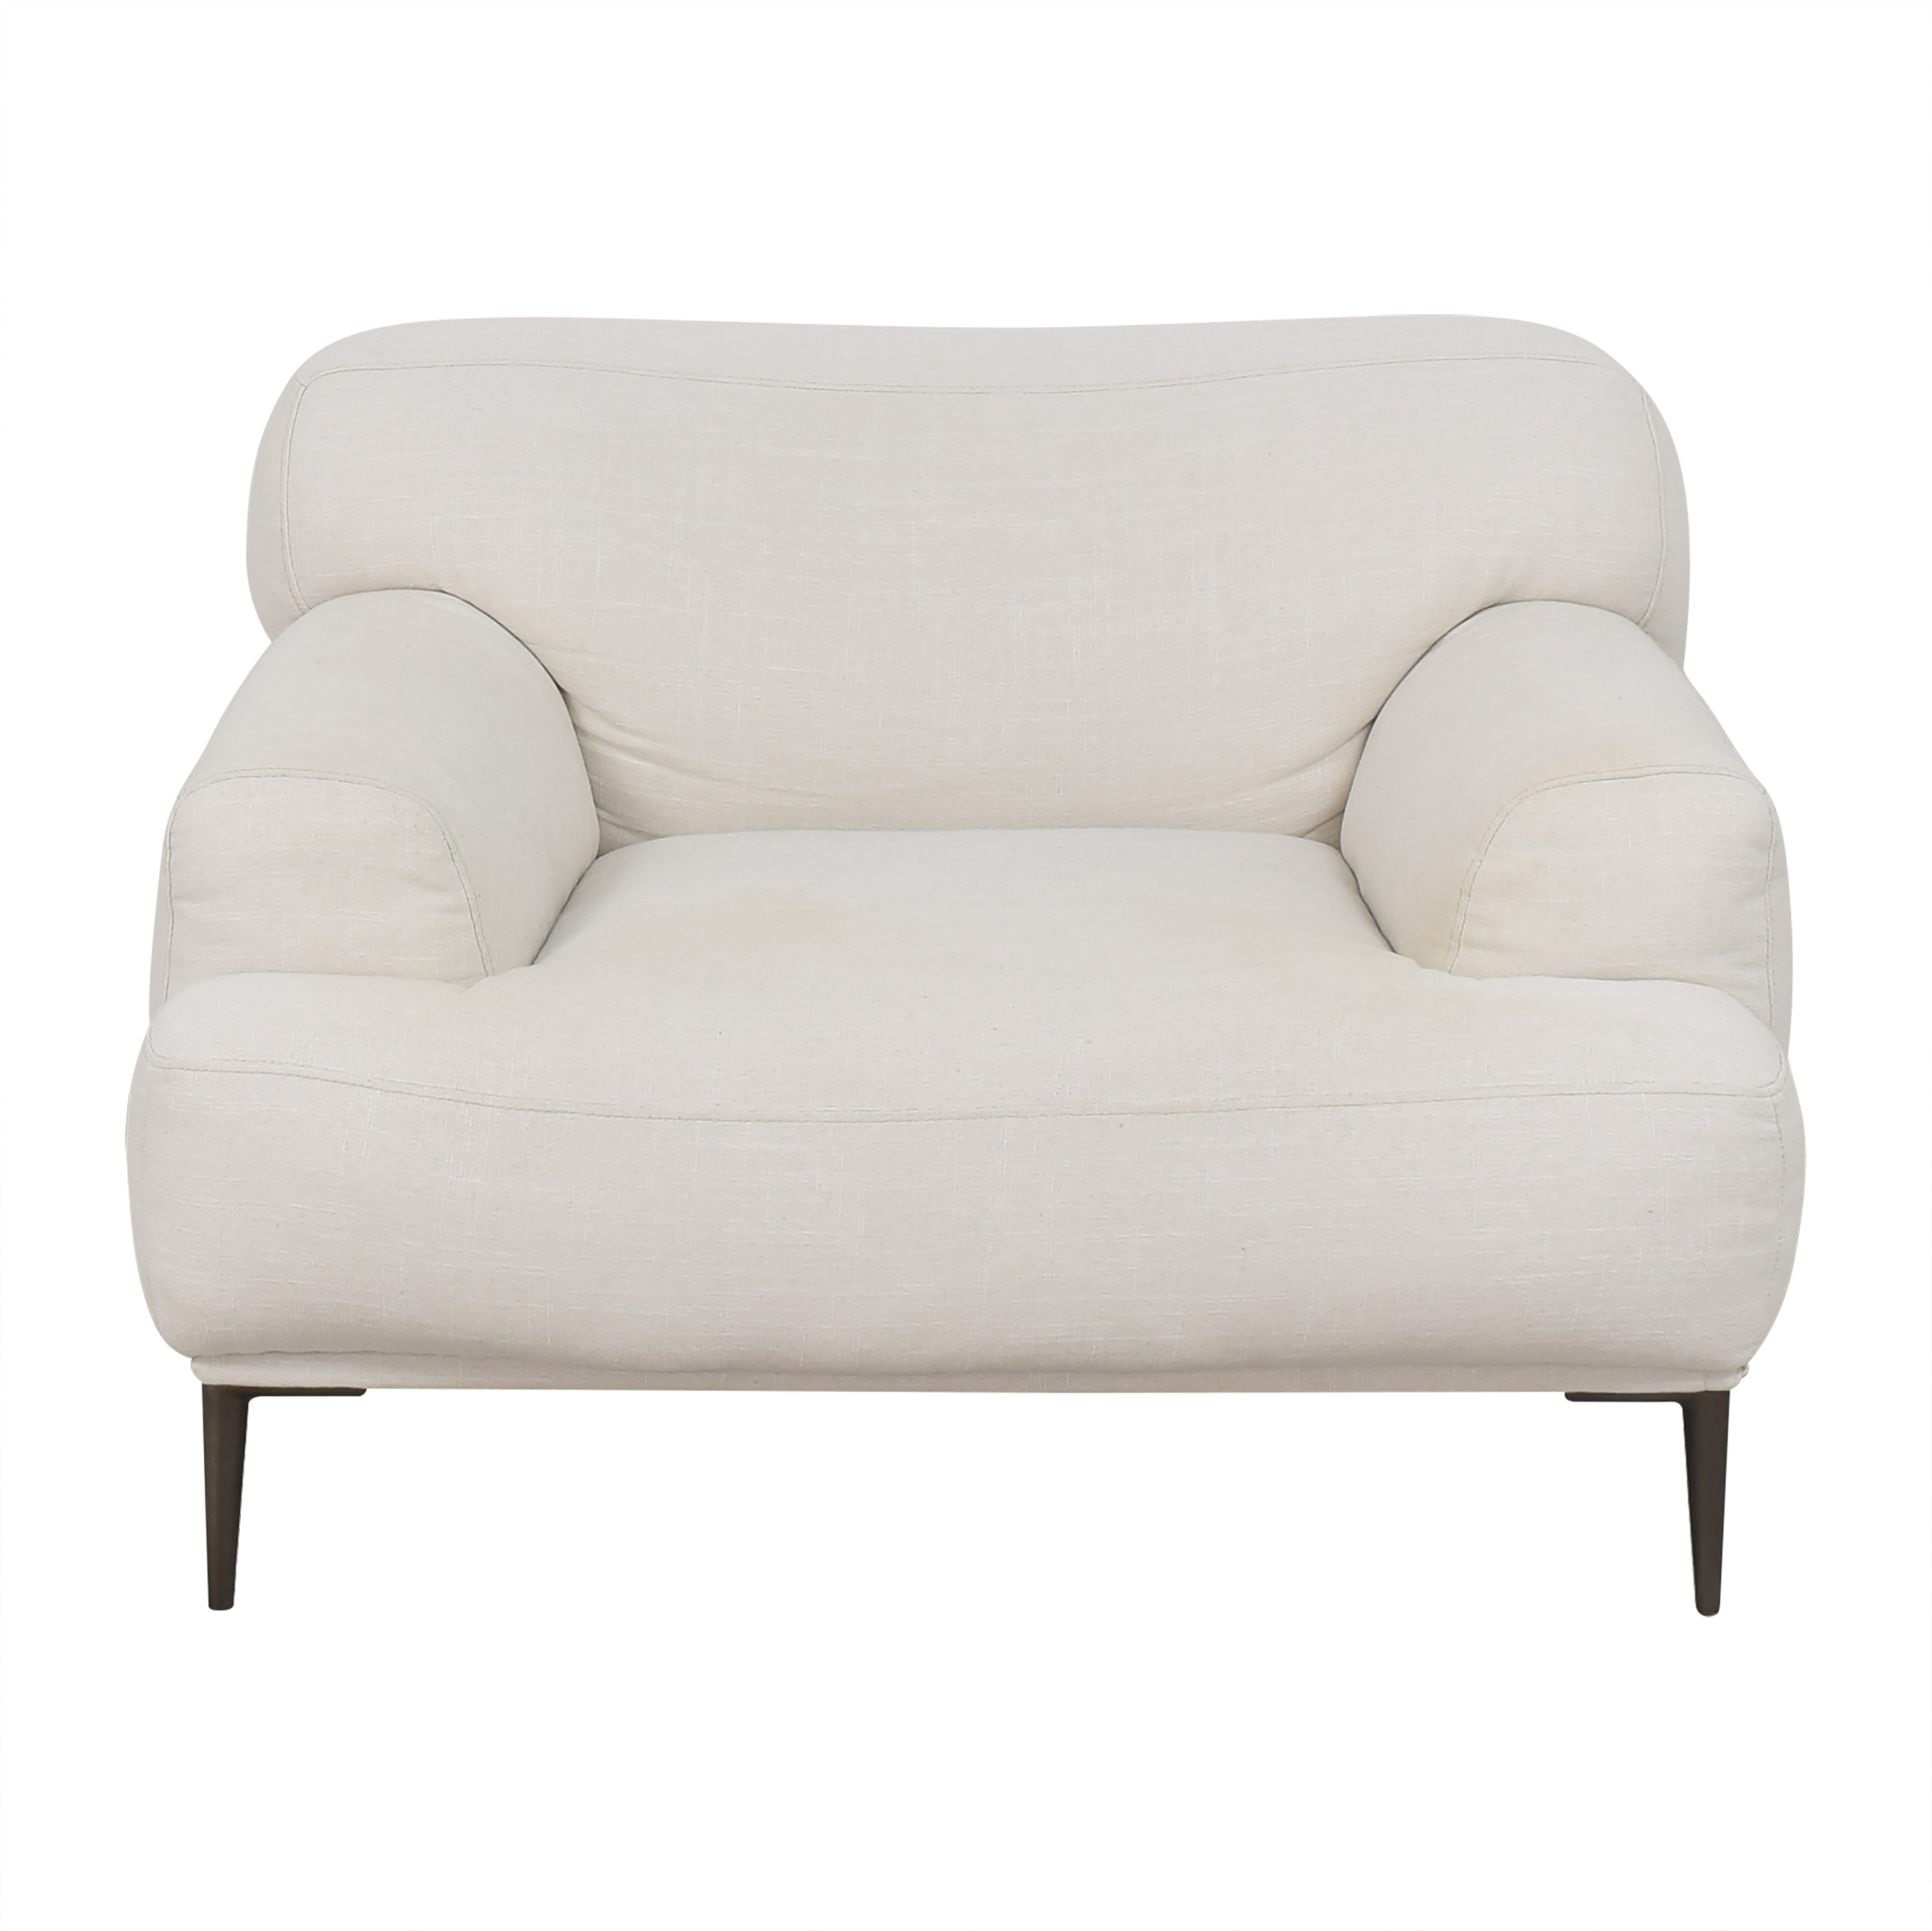 Article Article Abisko Lounge Chair ct